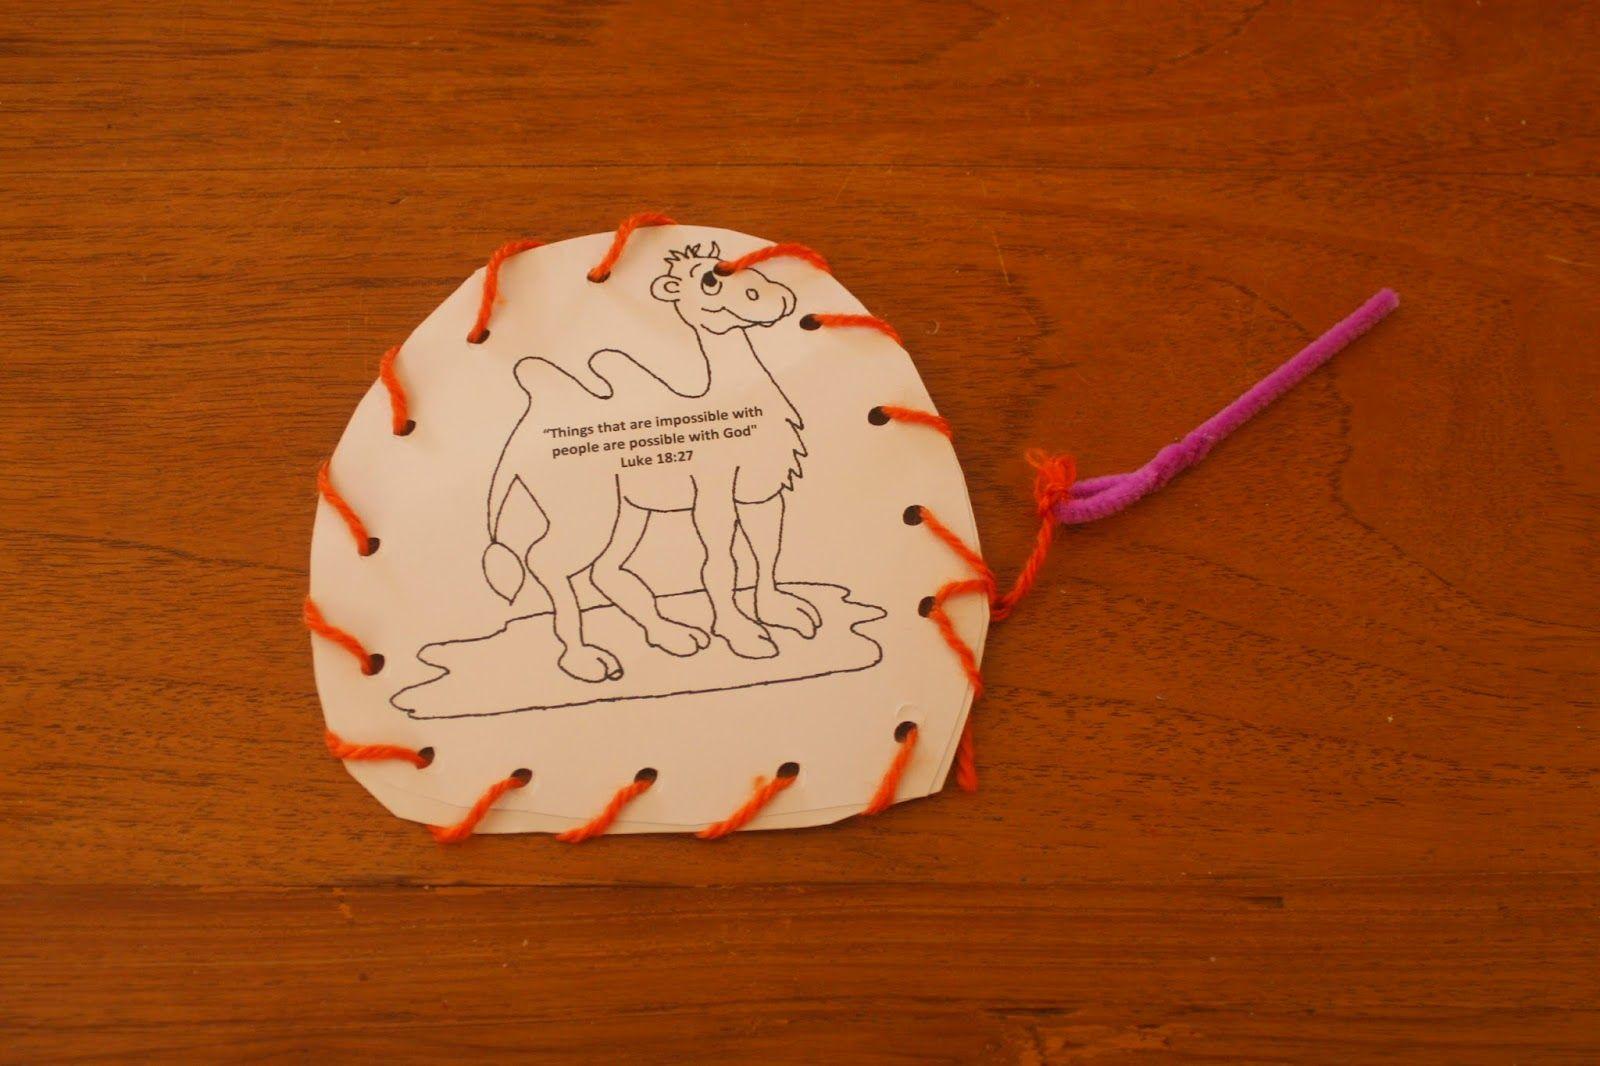 Craft For Year 3 Re Sunday School Crafts Bible Crafts Bible